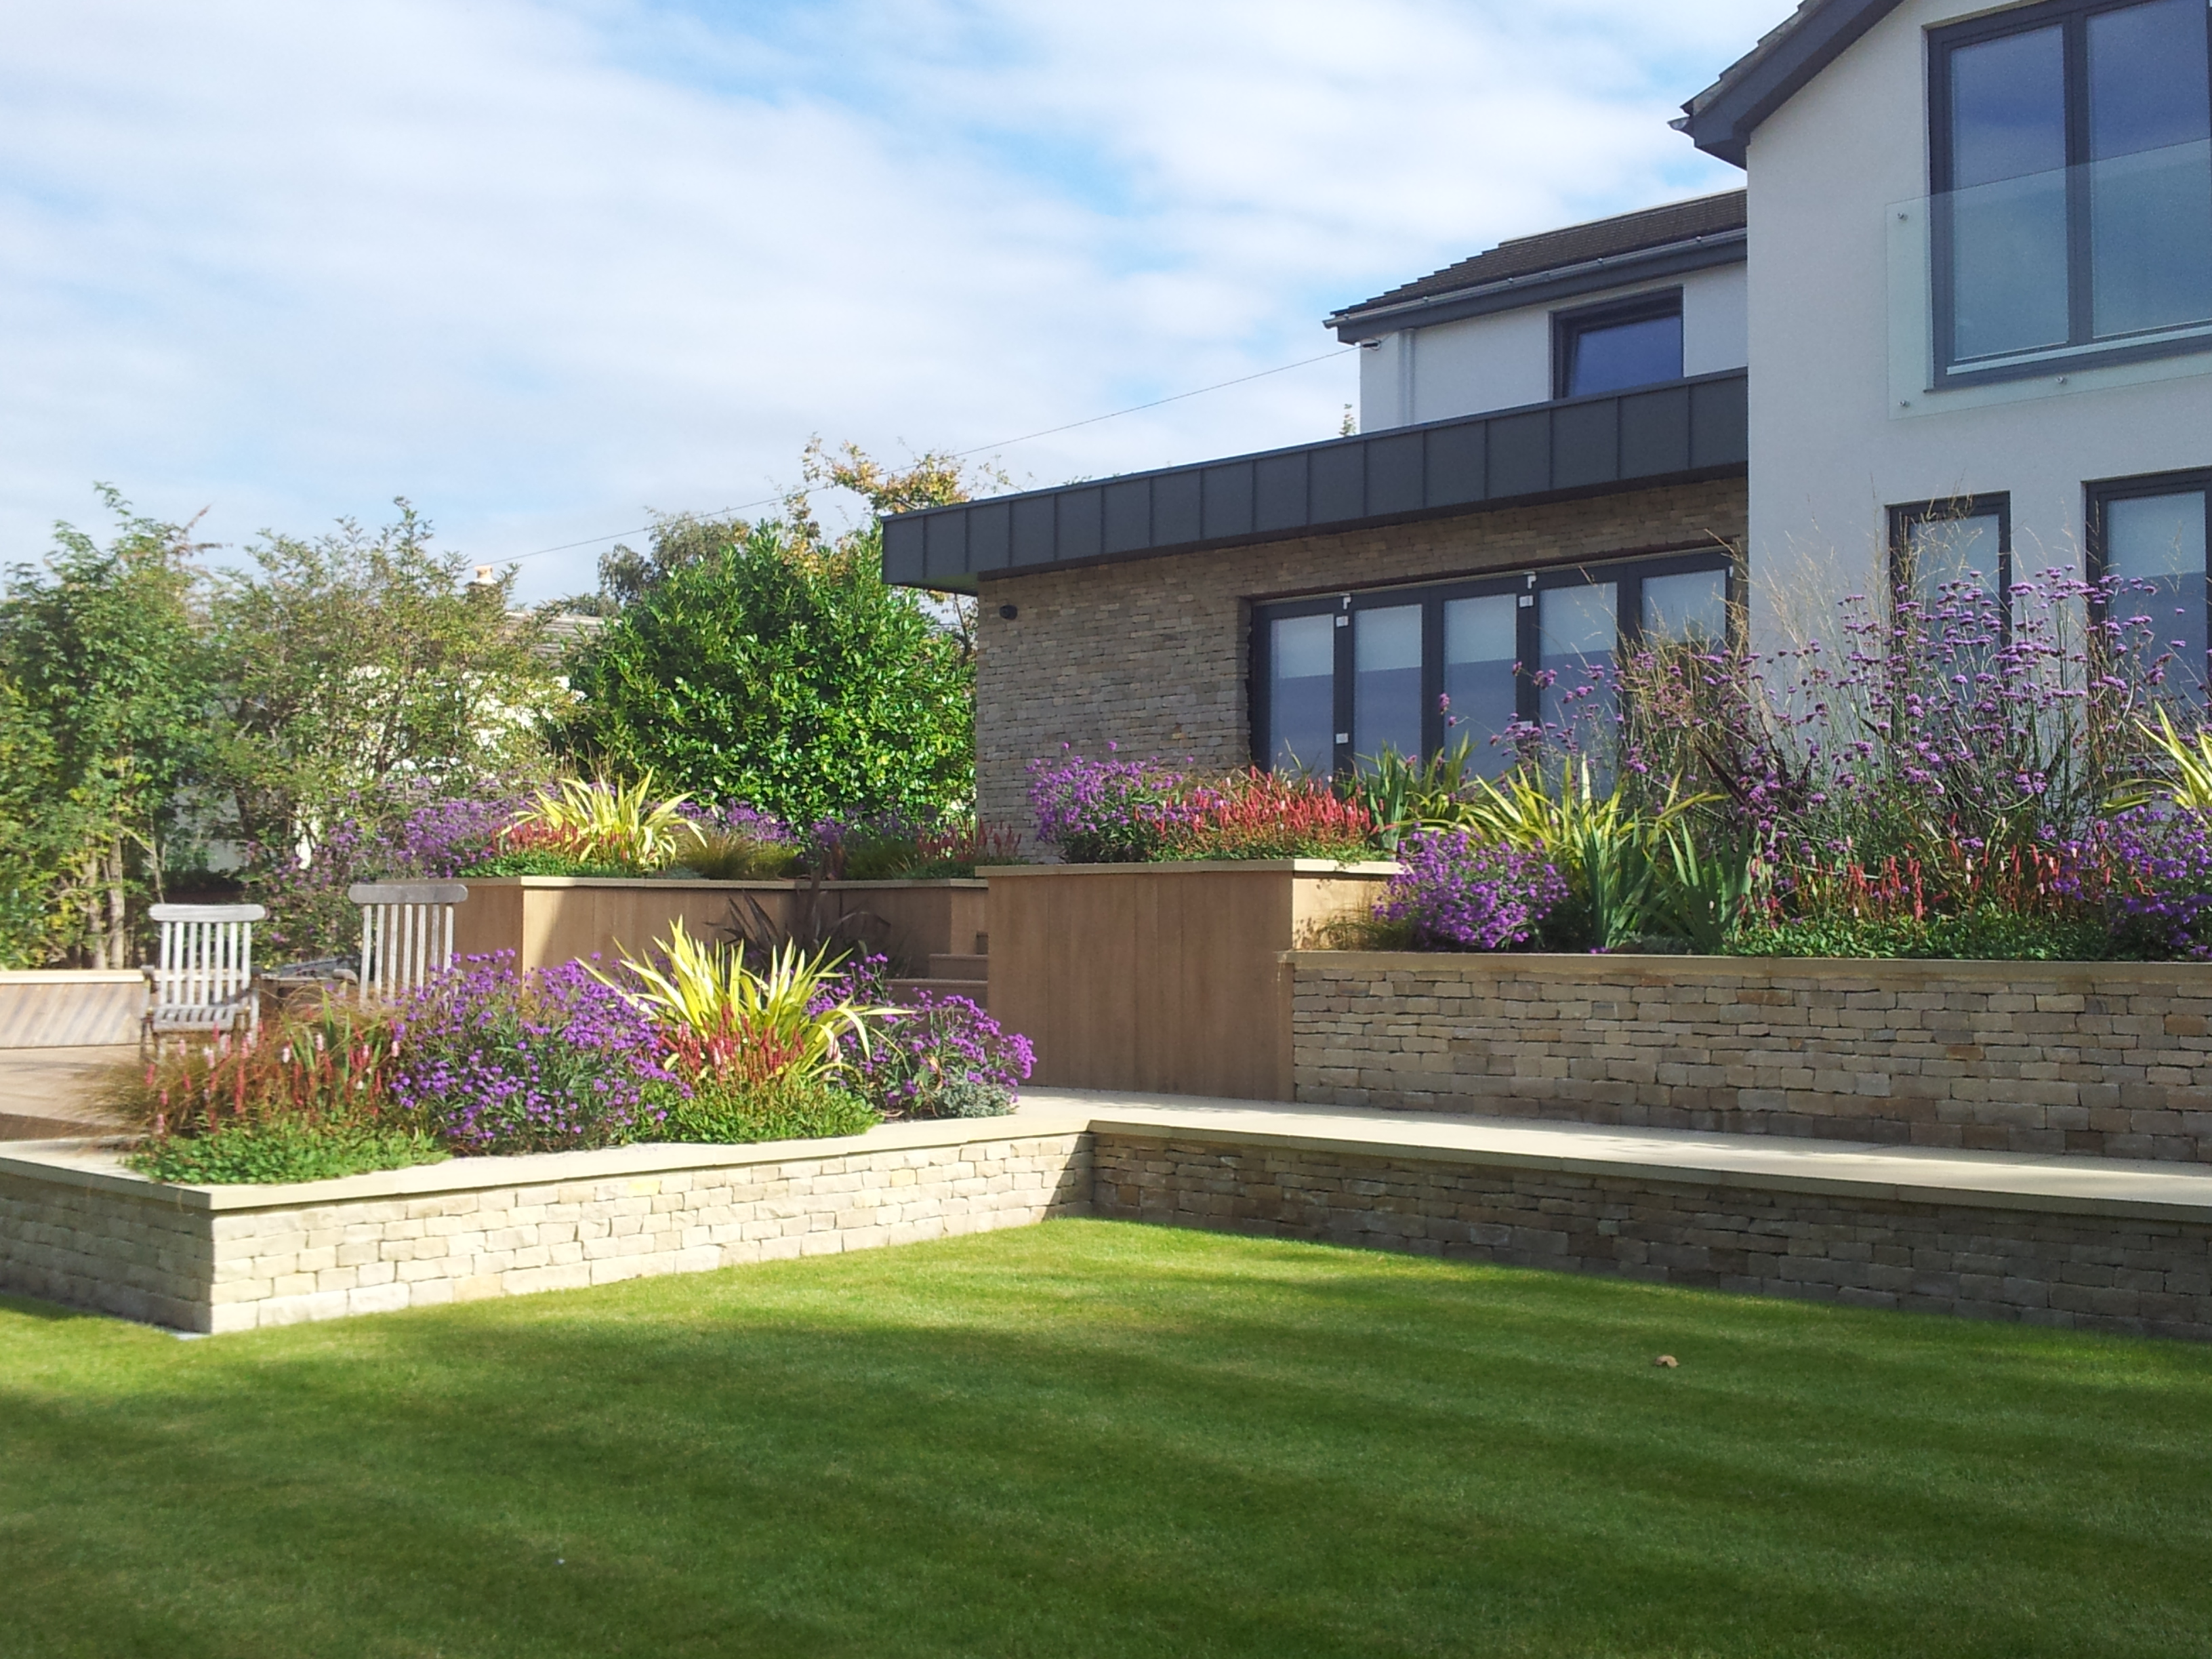 professional landscaping garden design services - Garden Design Uk